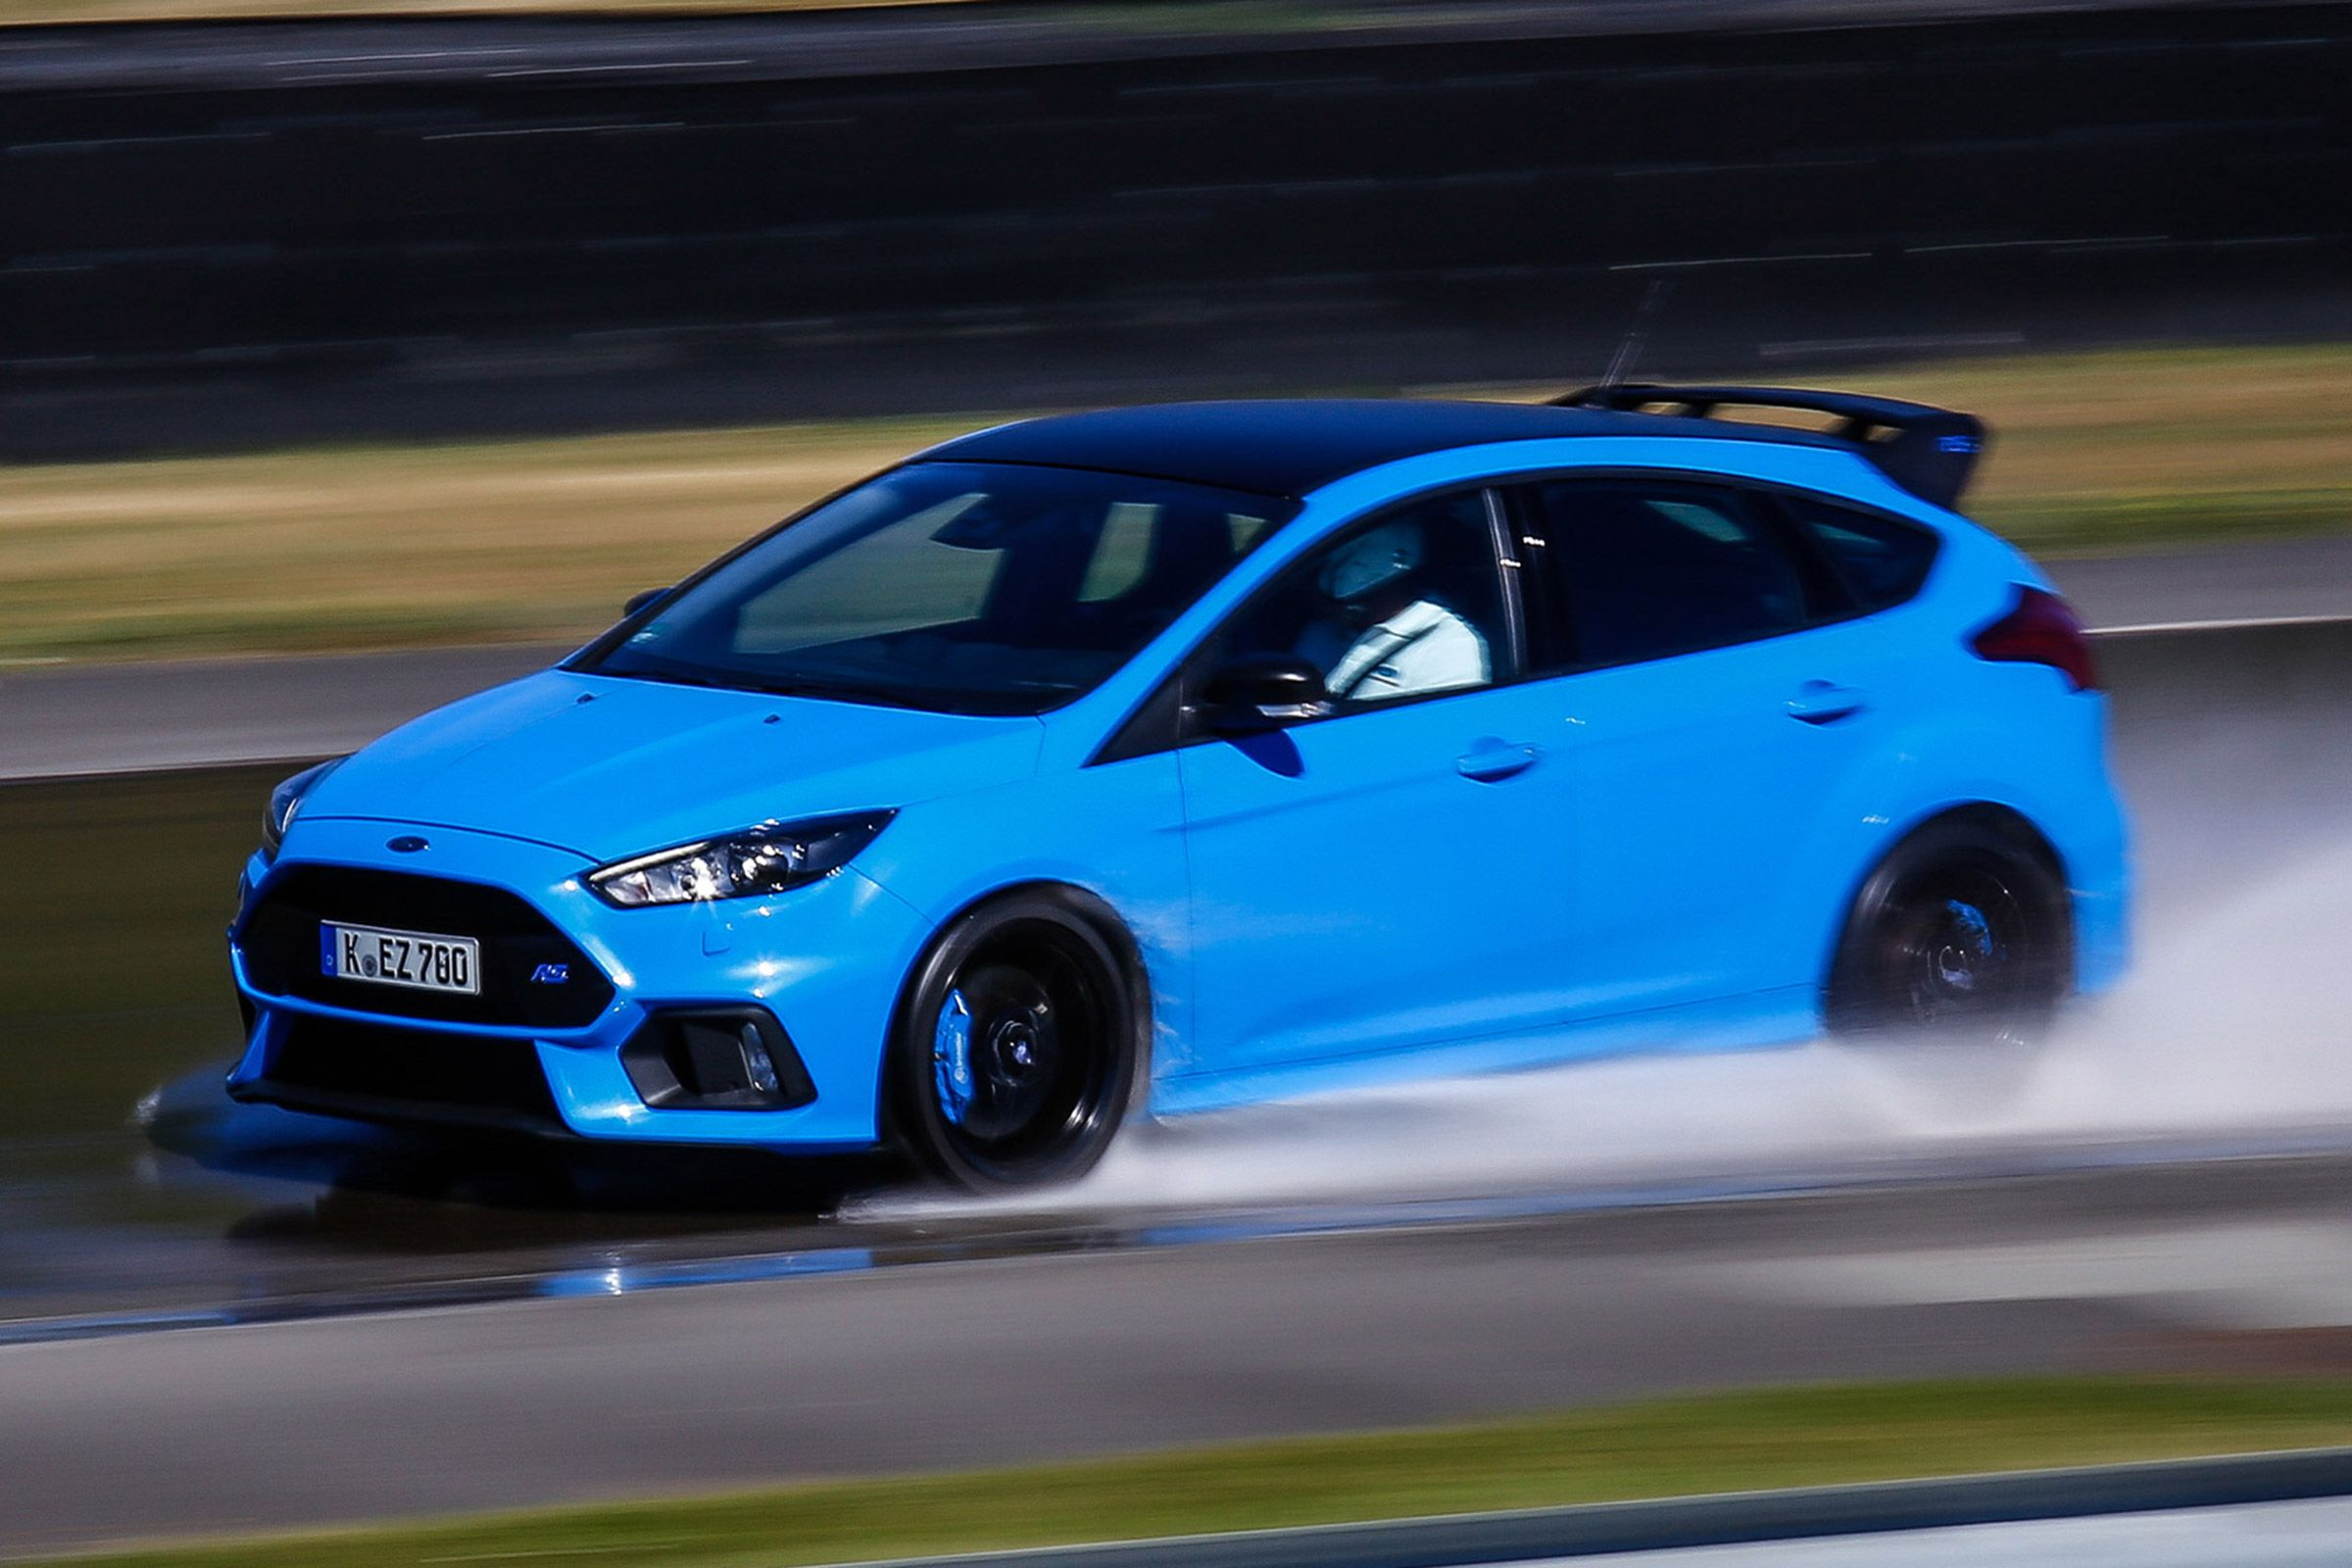 New Ford Focus Rs Edition 2017 Review Focus Rs Ford Focus Ford Focus Rs